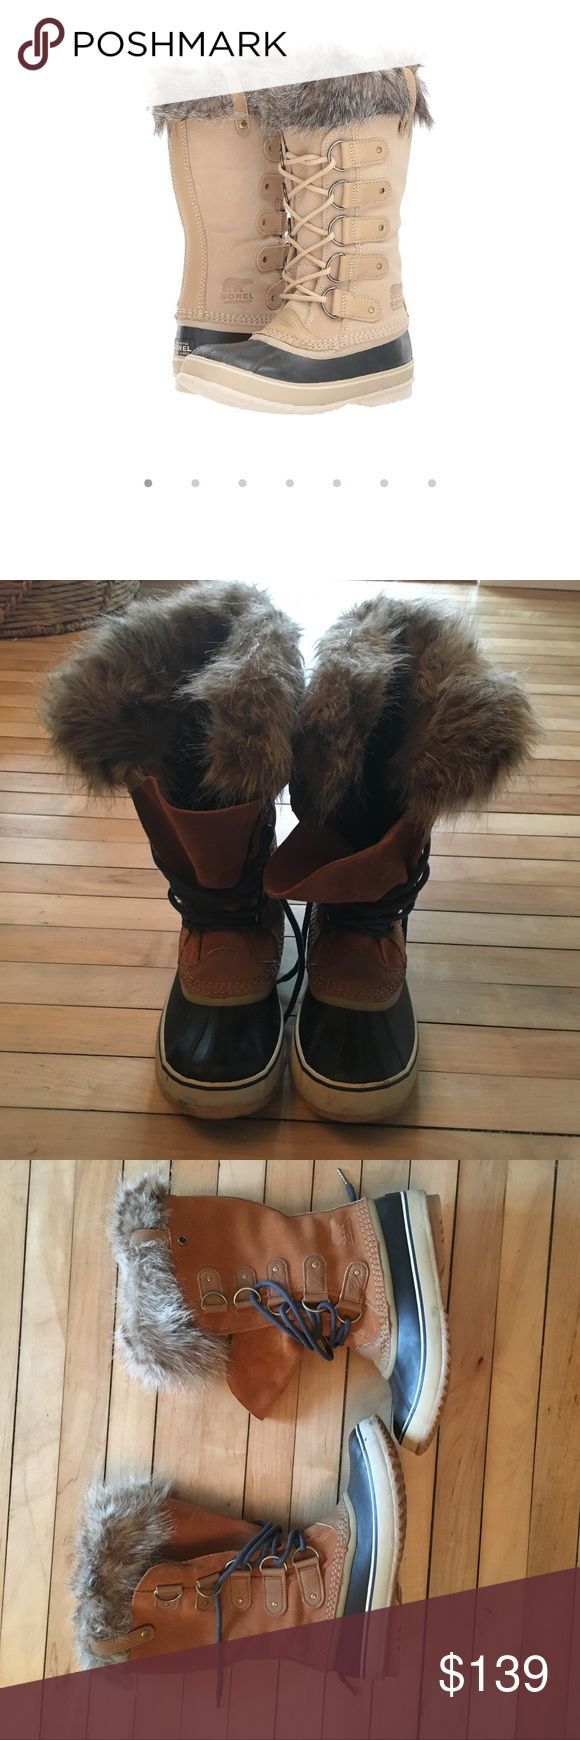 Sorel Joan of Arctic Snow Boots Worn only 3 times last season. Great heavy duty boots without sacrificing style. Item specs on last image straight from manufacturer. Minor scuffing on toe of one boot. Sorel Shoes Winter & Rain Boots